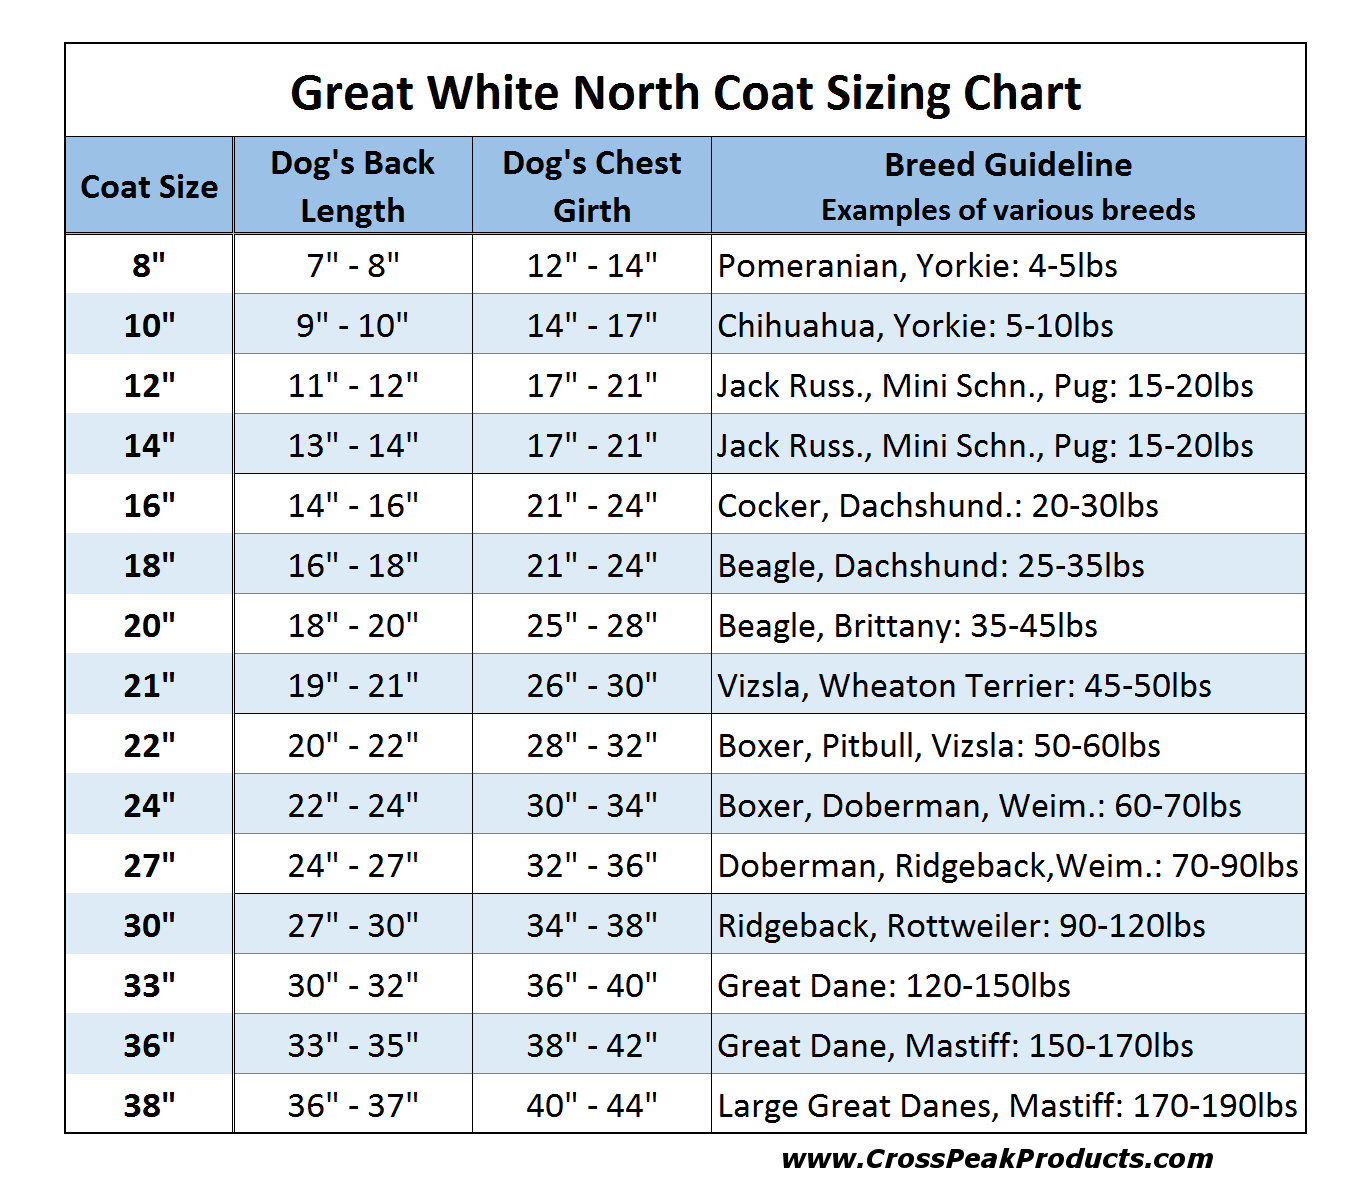 Great White North Winter Dog Coat Sizing Chart